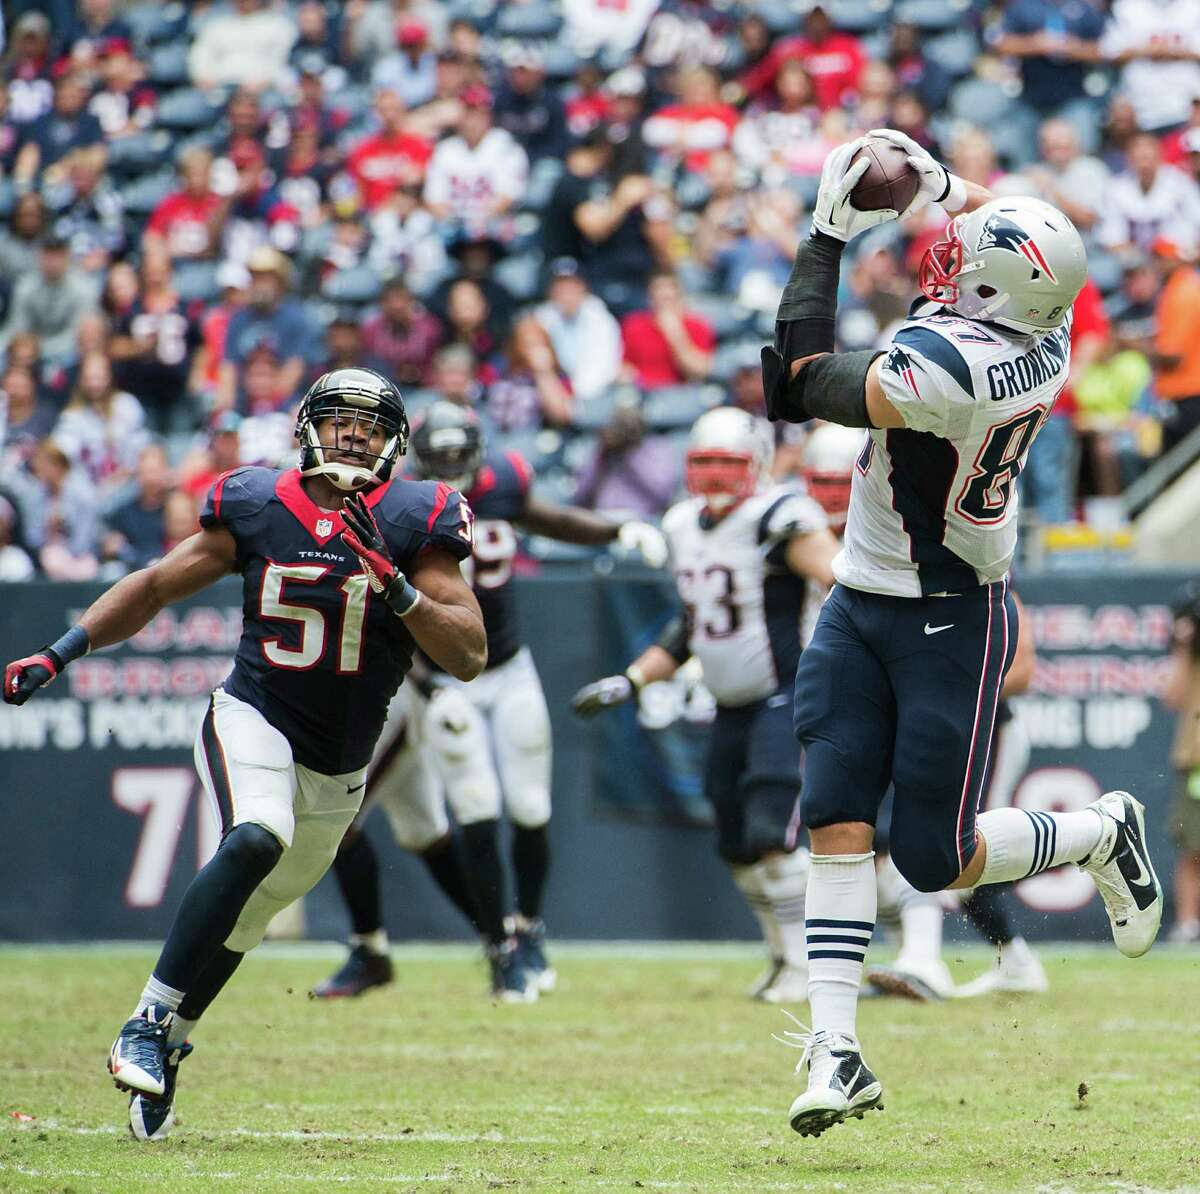 After stifling the Patriots in the first half, the Texans greet an unwanted duty in the second - chasing down the recipients of Tom Brady's numerous completions.